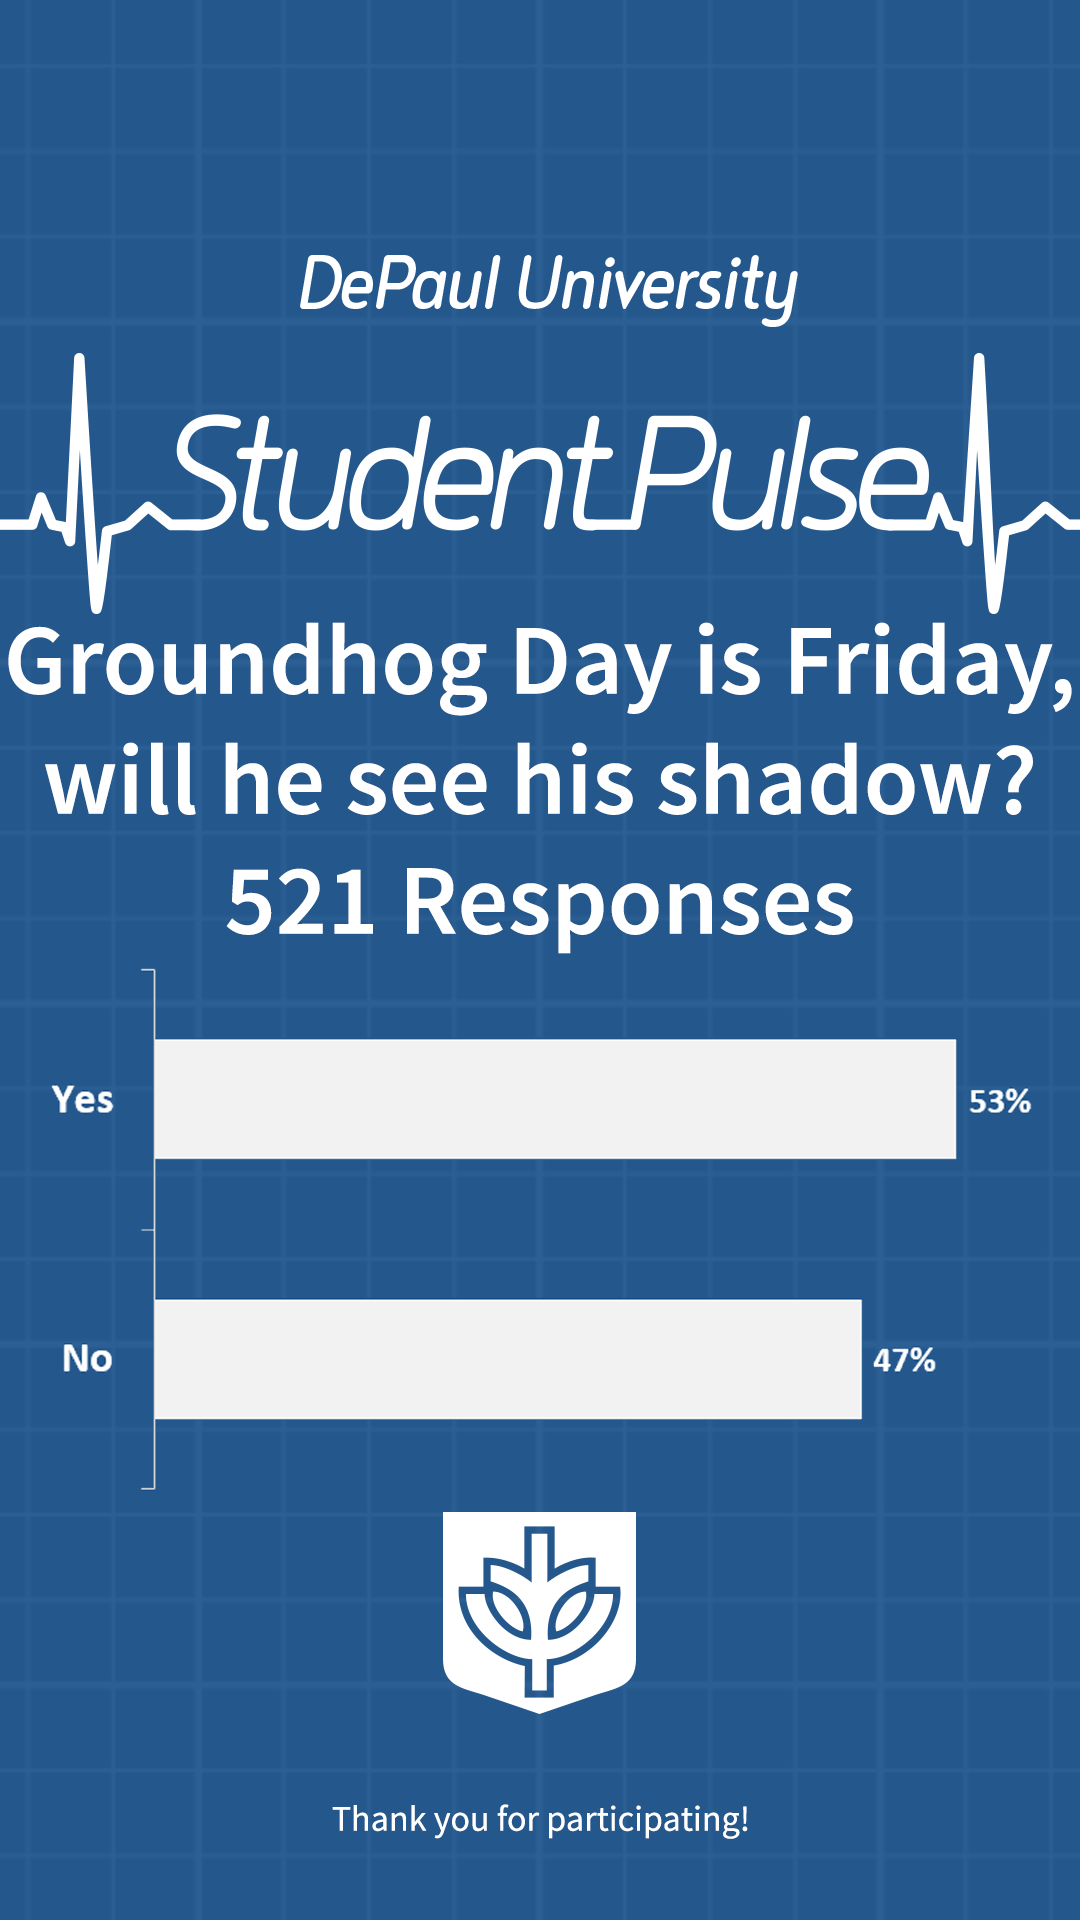 Groundhog Day is Friday, will he see his shadow?